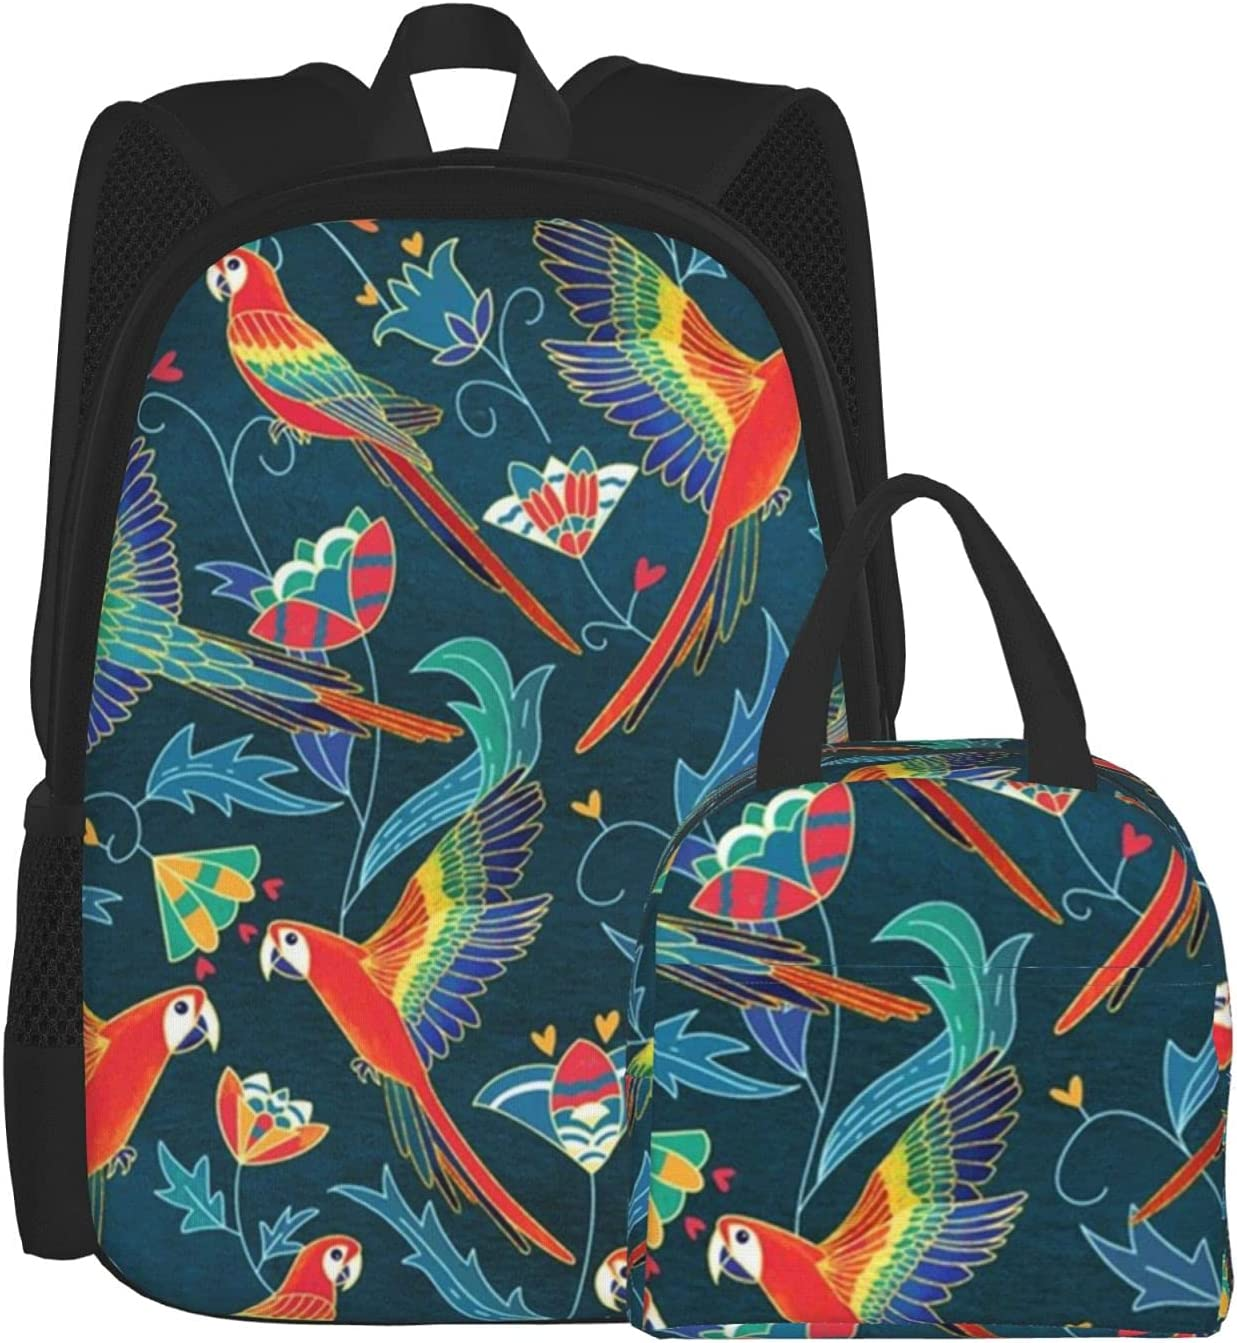 Lunch Bag And Backpack Max 45% OFF Purchase Combination Pack Gold Red Enamel Macaws L